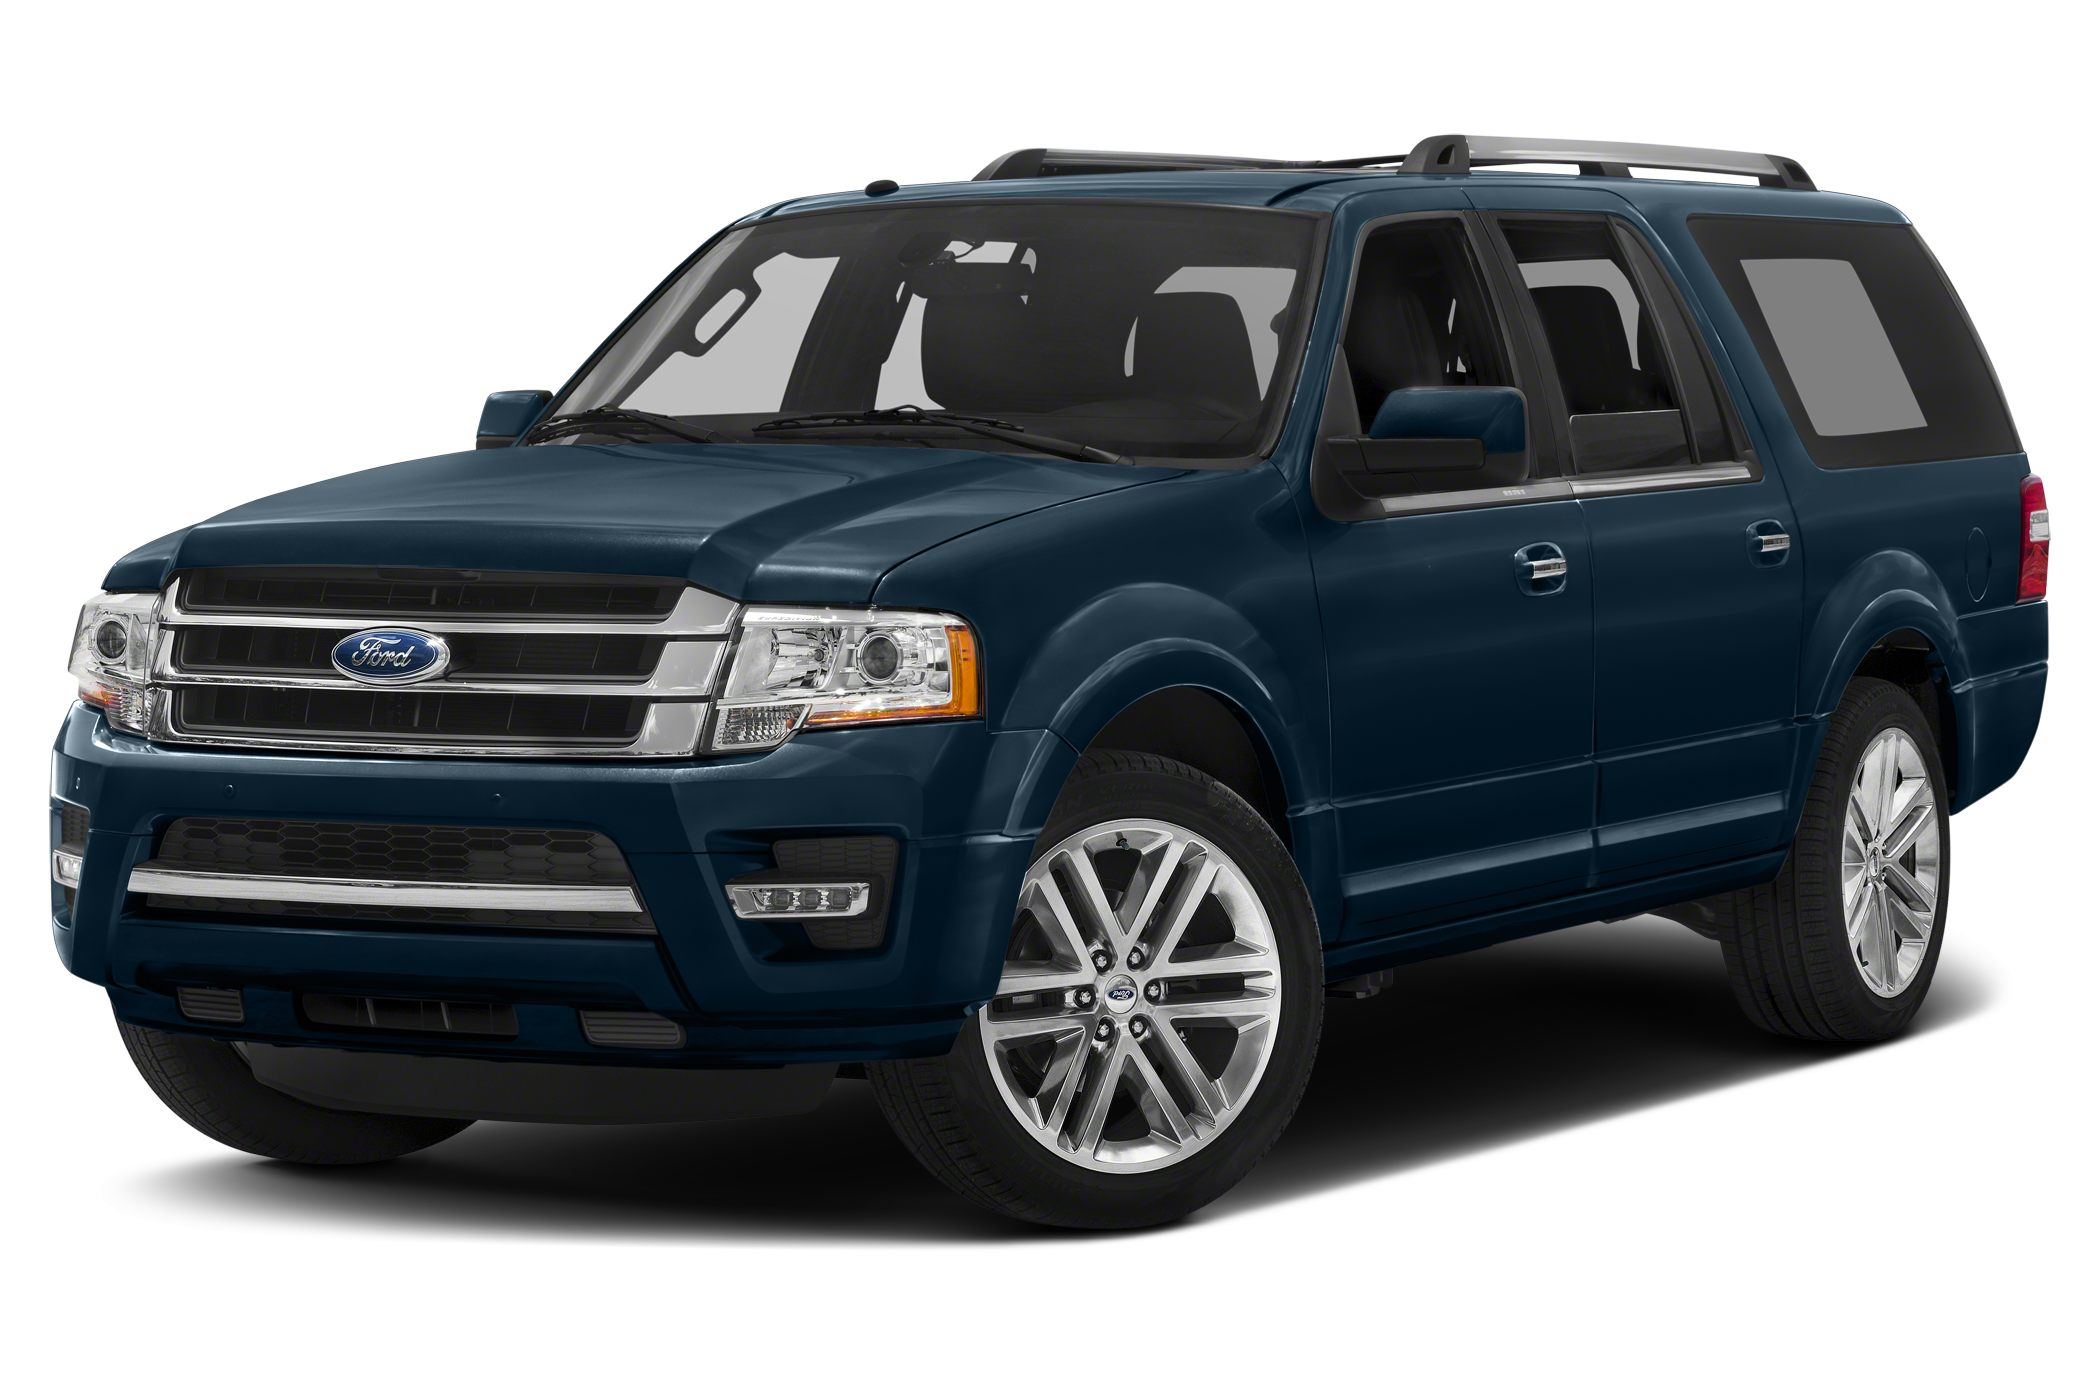 2015 Ford Expedition EL Limited 2 YEARS MAINTENANCE INCLUDED WITH EVERY VEHICLE PURCHASED In their